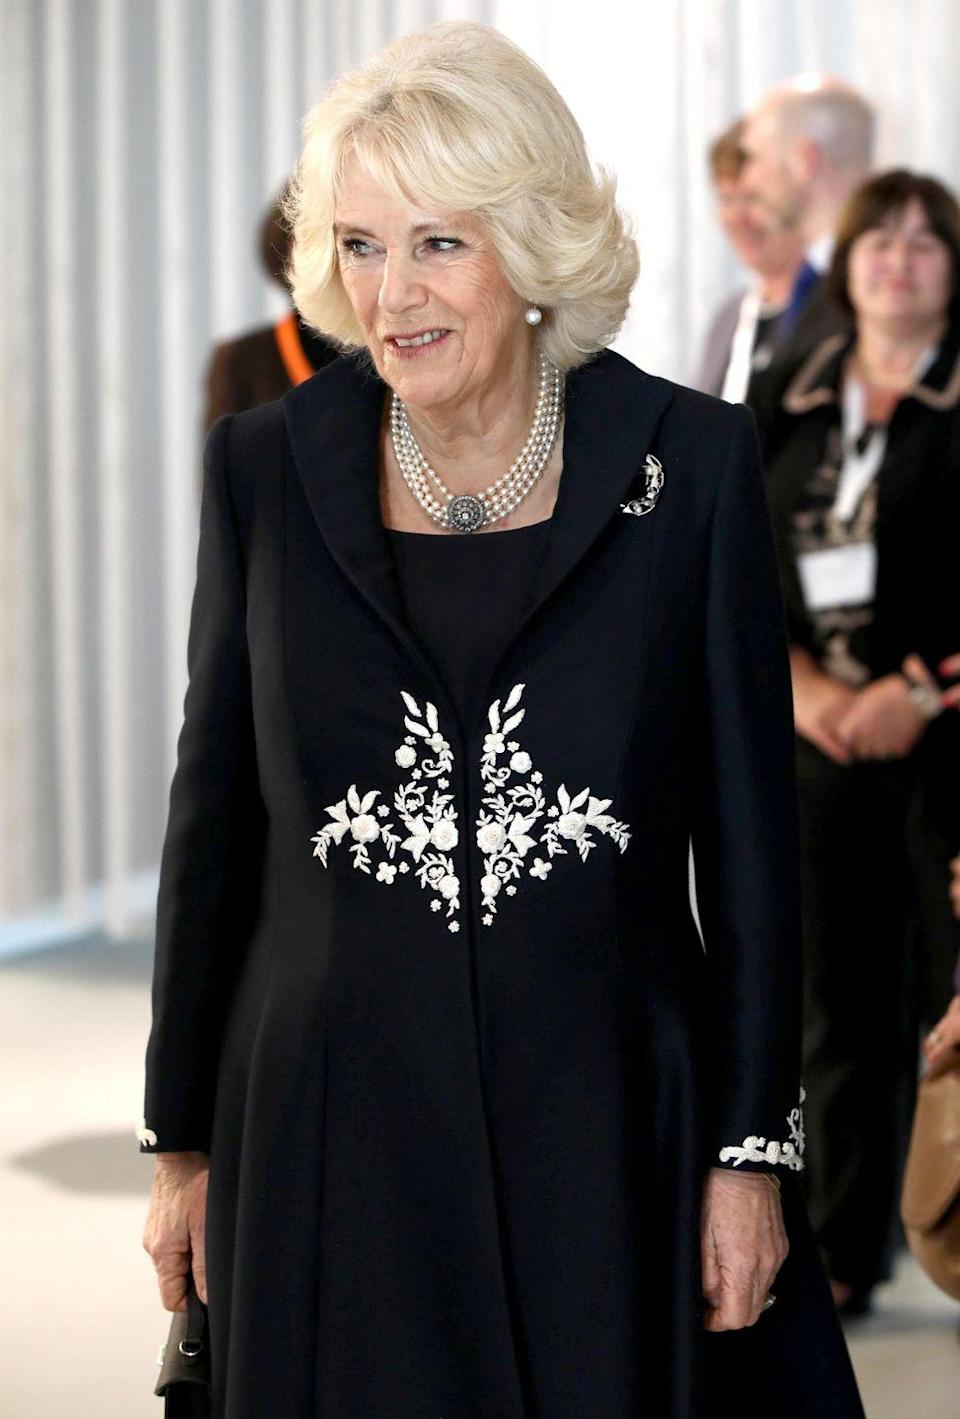 <p>Camilla wore an embroidered black coat, pearl earrings, a pearl choker, and diamond broach to attend the launch of the Royal Osteoporosis Society. </p>